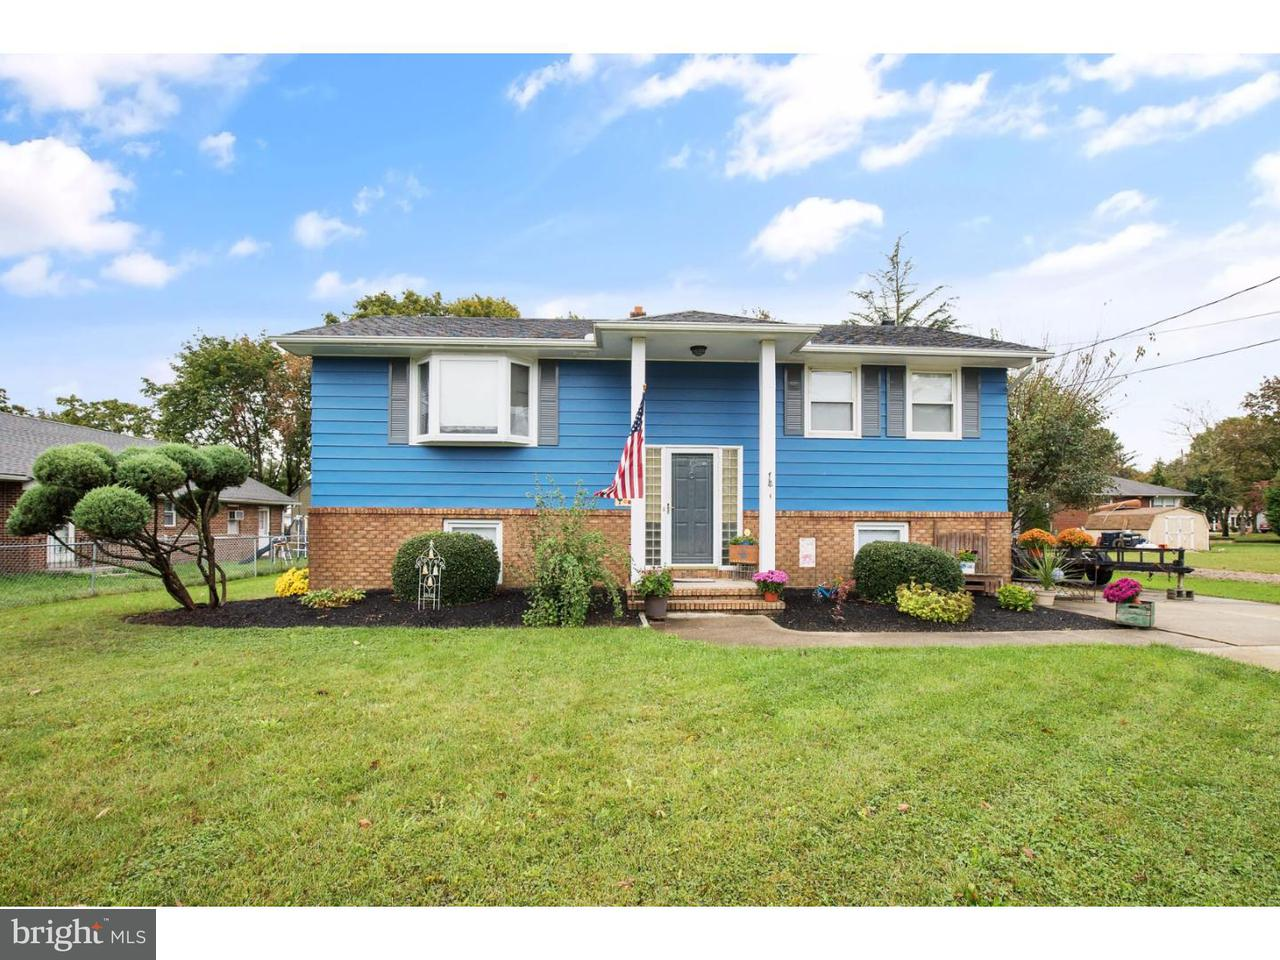 Single Family Home for Sale at 202 N WILLOW Street Landisville, New Jersey 08326 United States